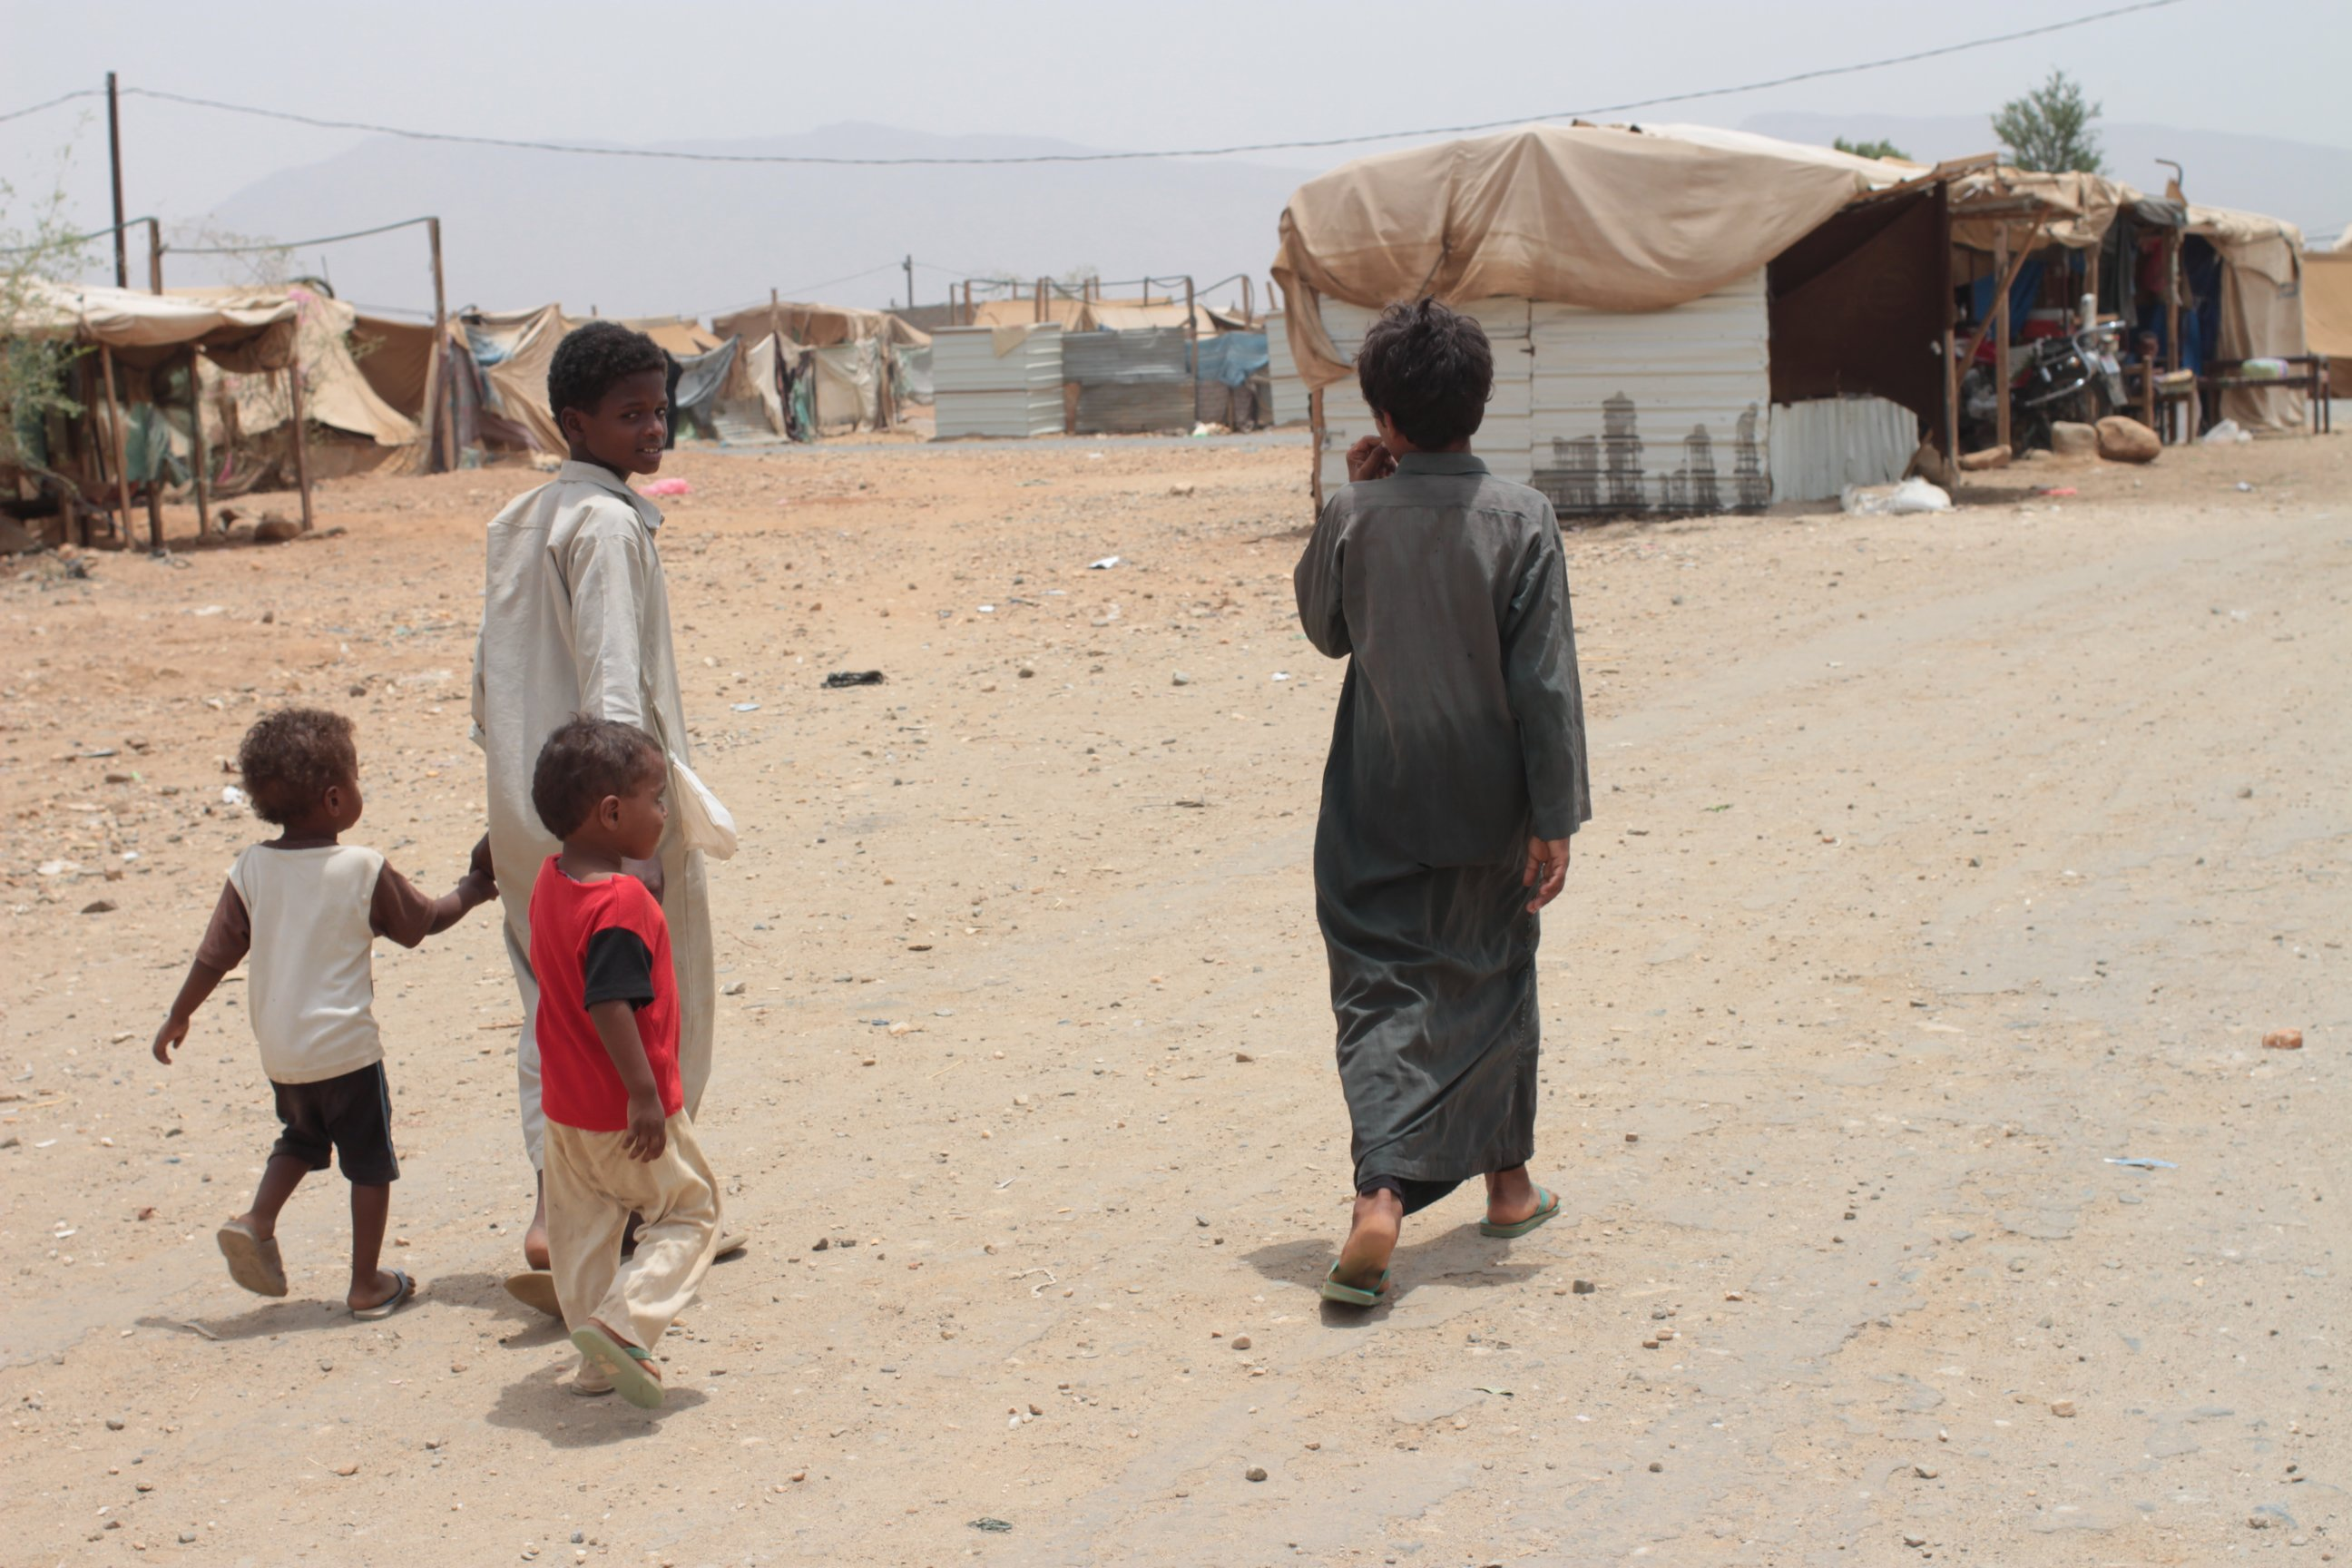 IDPs in Mazraq camp, Hajjah governorate not yet ready to return home to Sa'dah despite a 2010 ceasefire